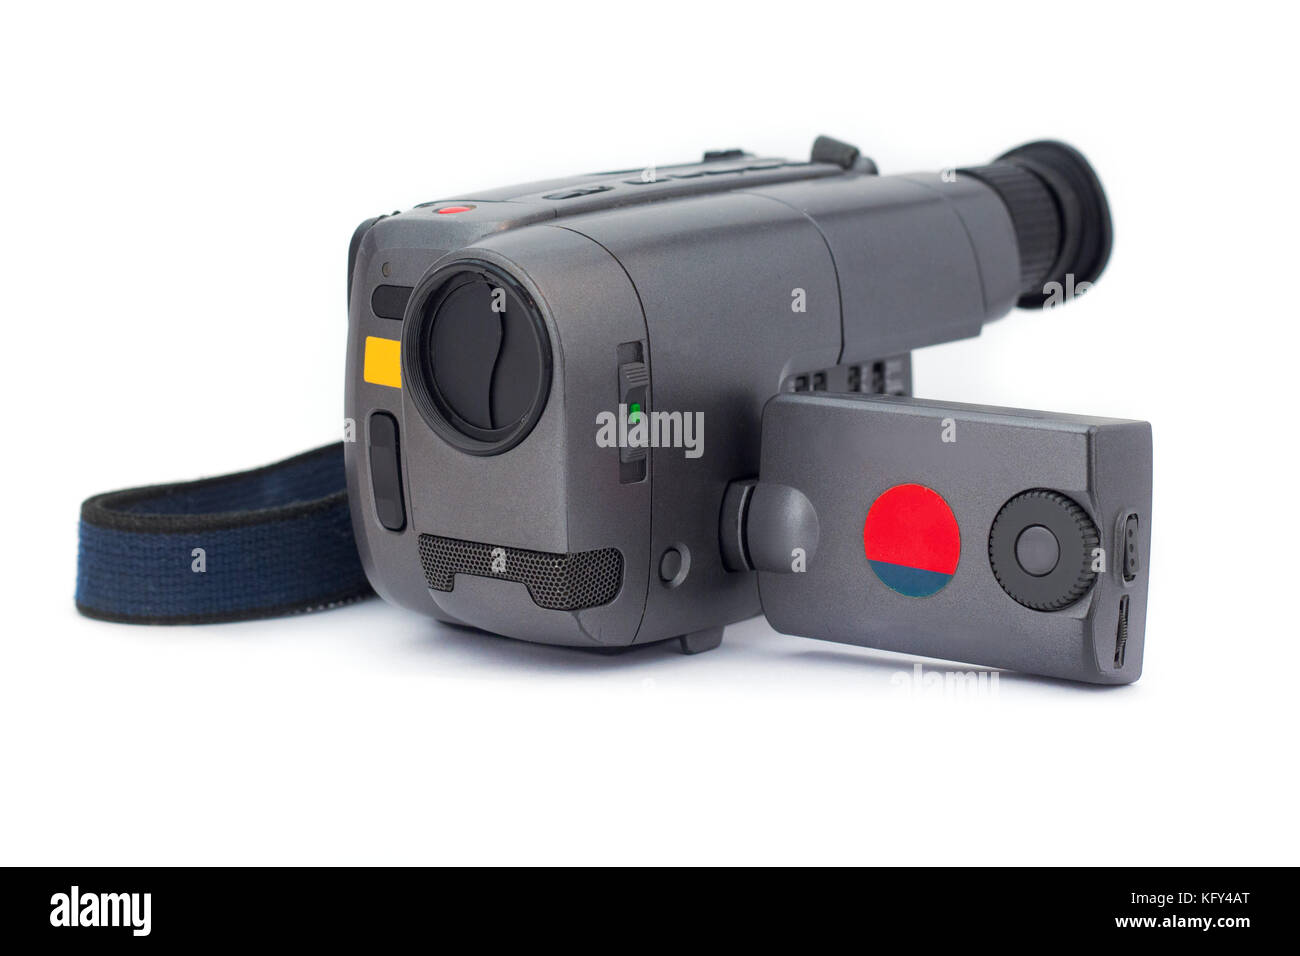 Old stock analog camcorder from college years 4